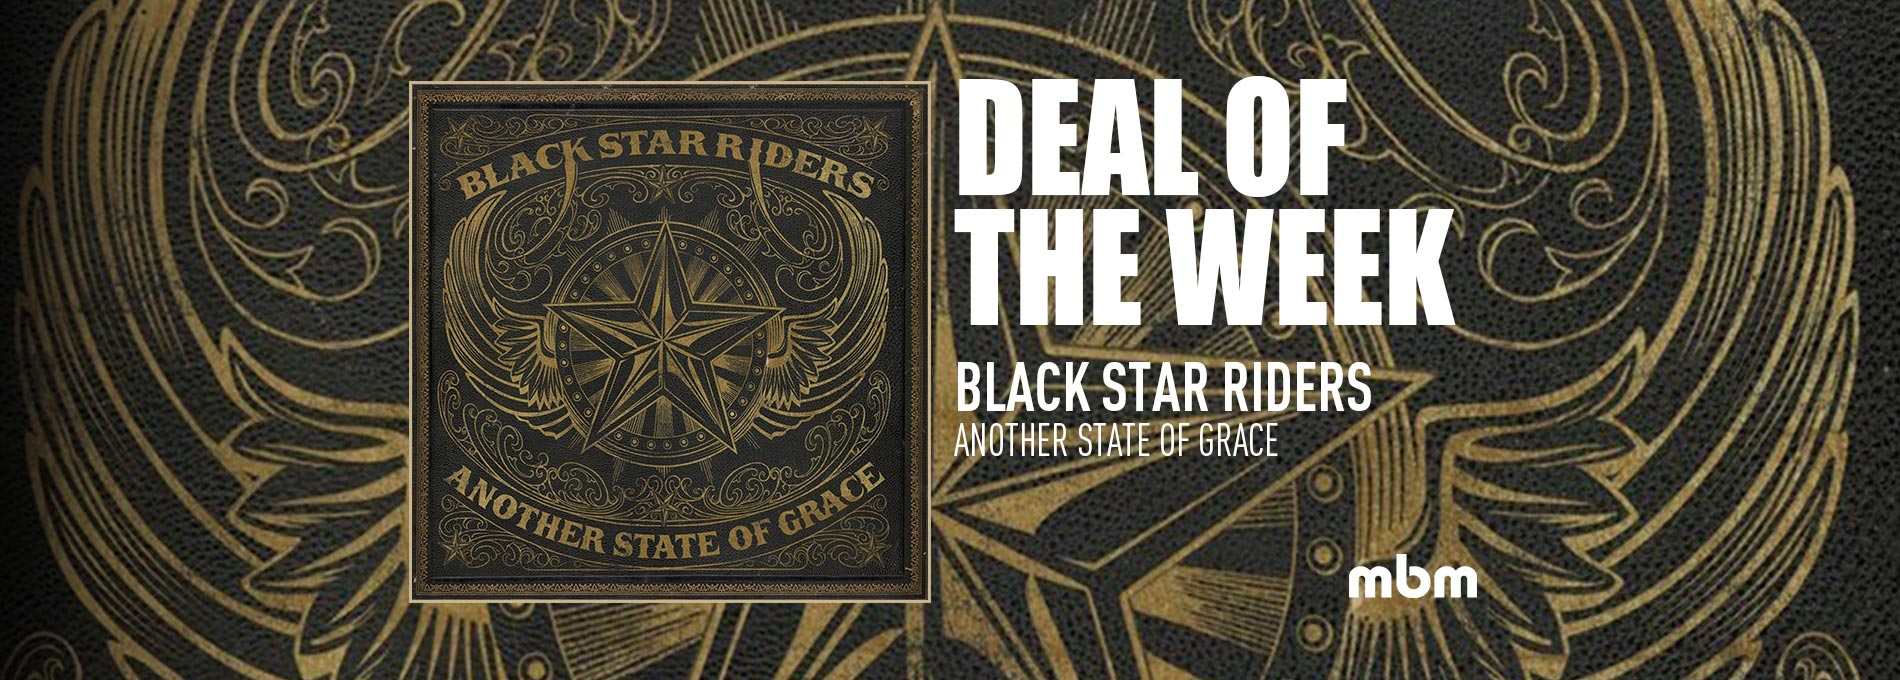 Deal Of The Week: BLACK STAR RIDERS - Another State Of Grace